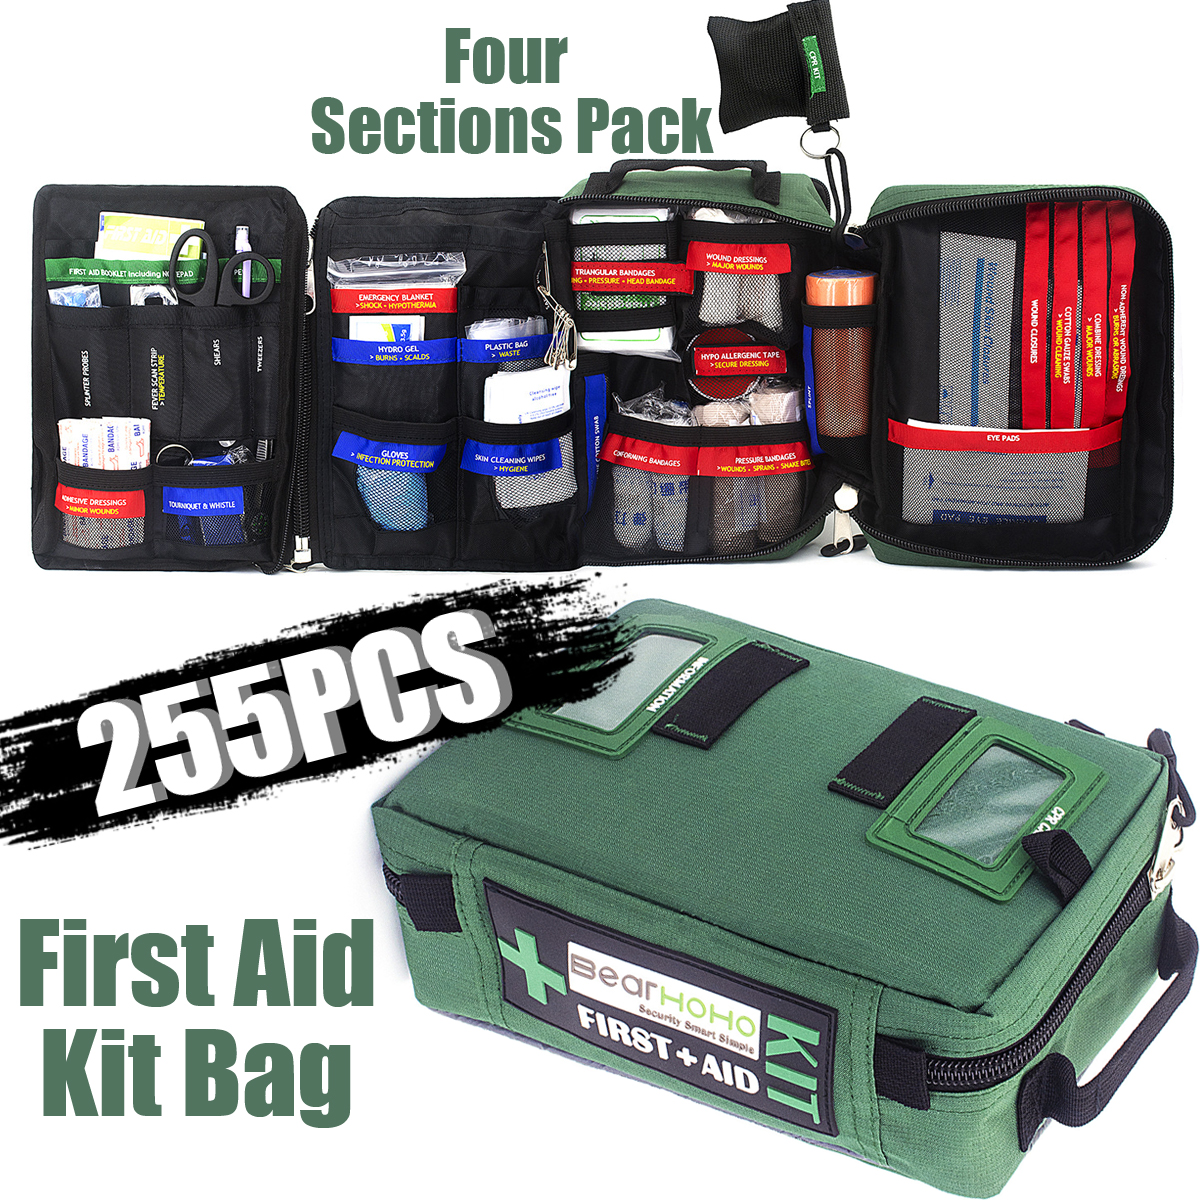 255Pcs Handy First Aid Kit Bag Lightweight Emergency Medical Rescue Bags For Home Outdoors Car Travel School Hiking Survival(China)